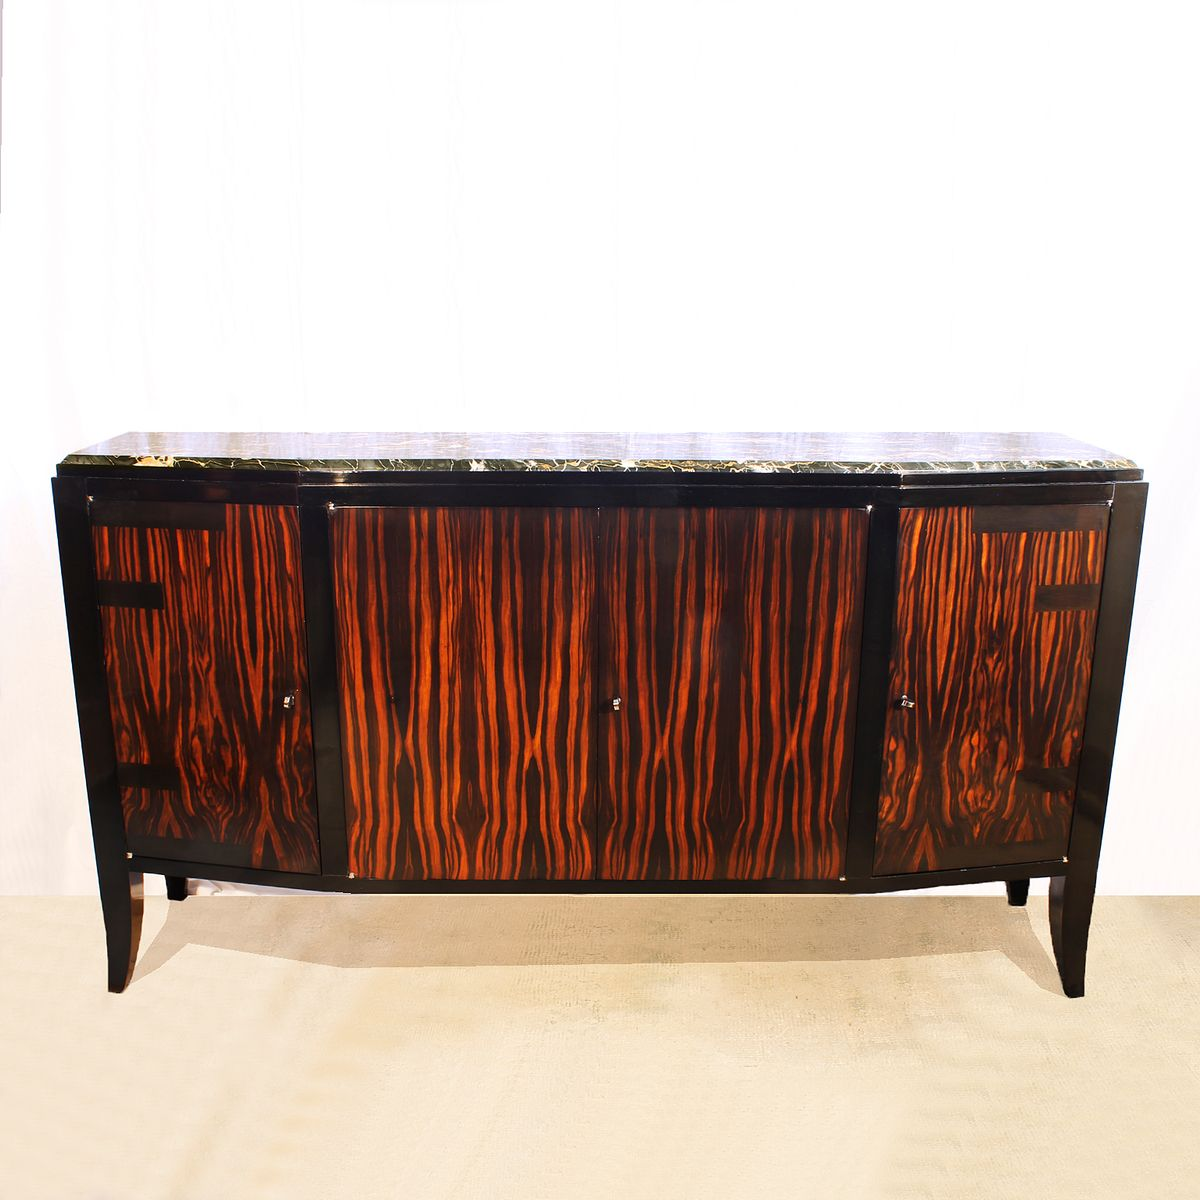 franz sisches art deco sideboard mit vier t ren 1920er bei pamono kaufen. Black Bedroom Furniture Sets. Home Design Ideas